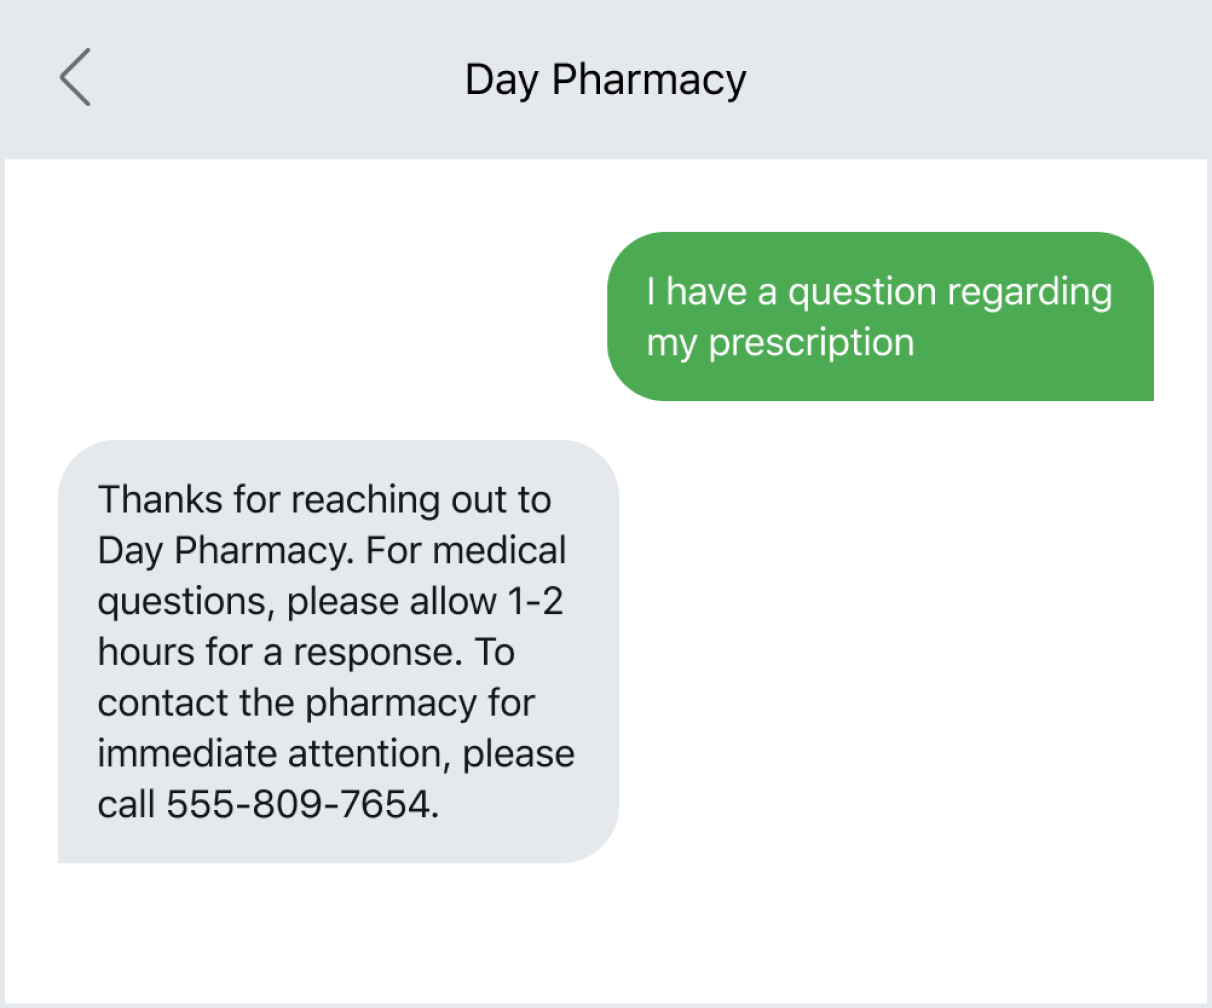 Text auto-reply confirming the message was received